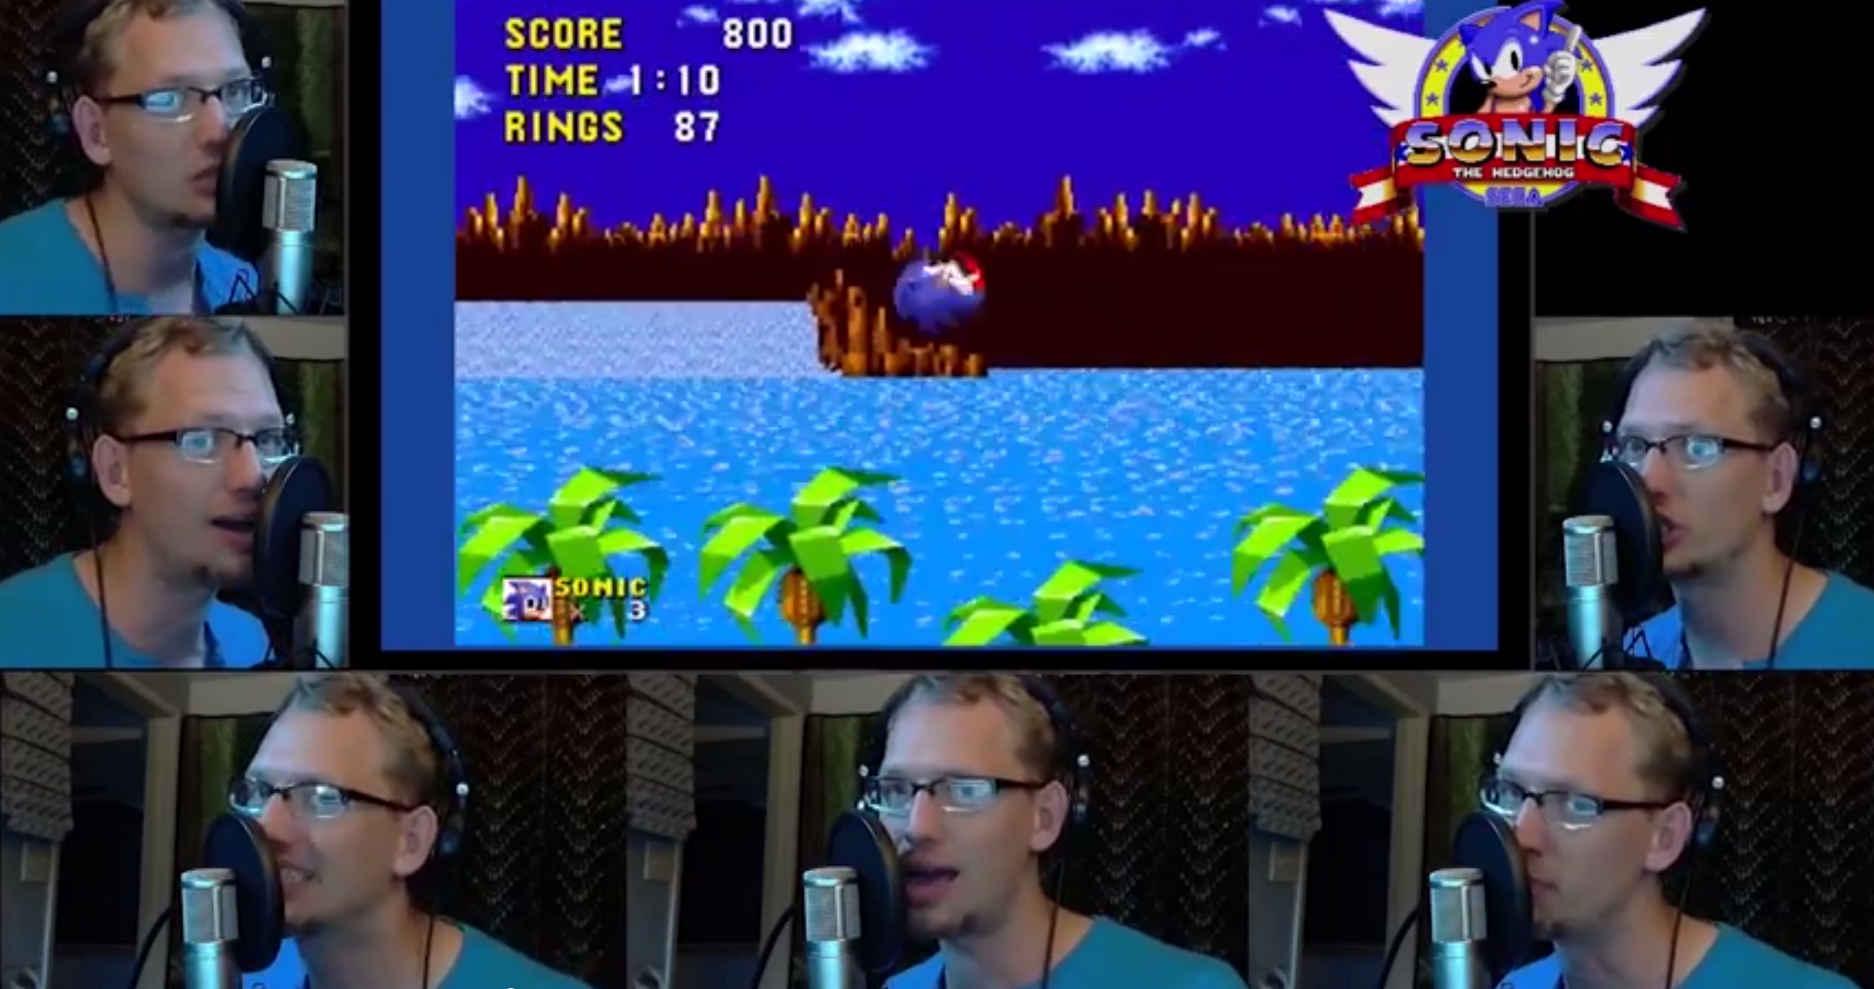 If you watch one 16-minute a cappella history of video games, make it this one